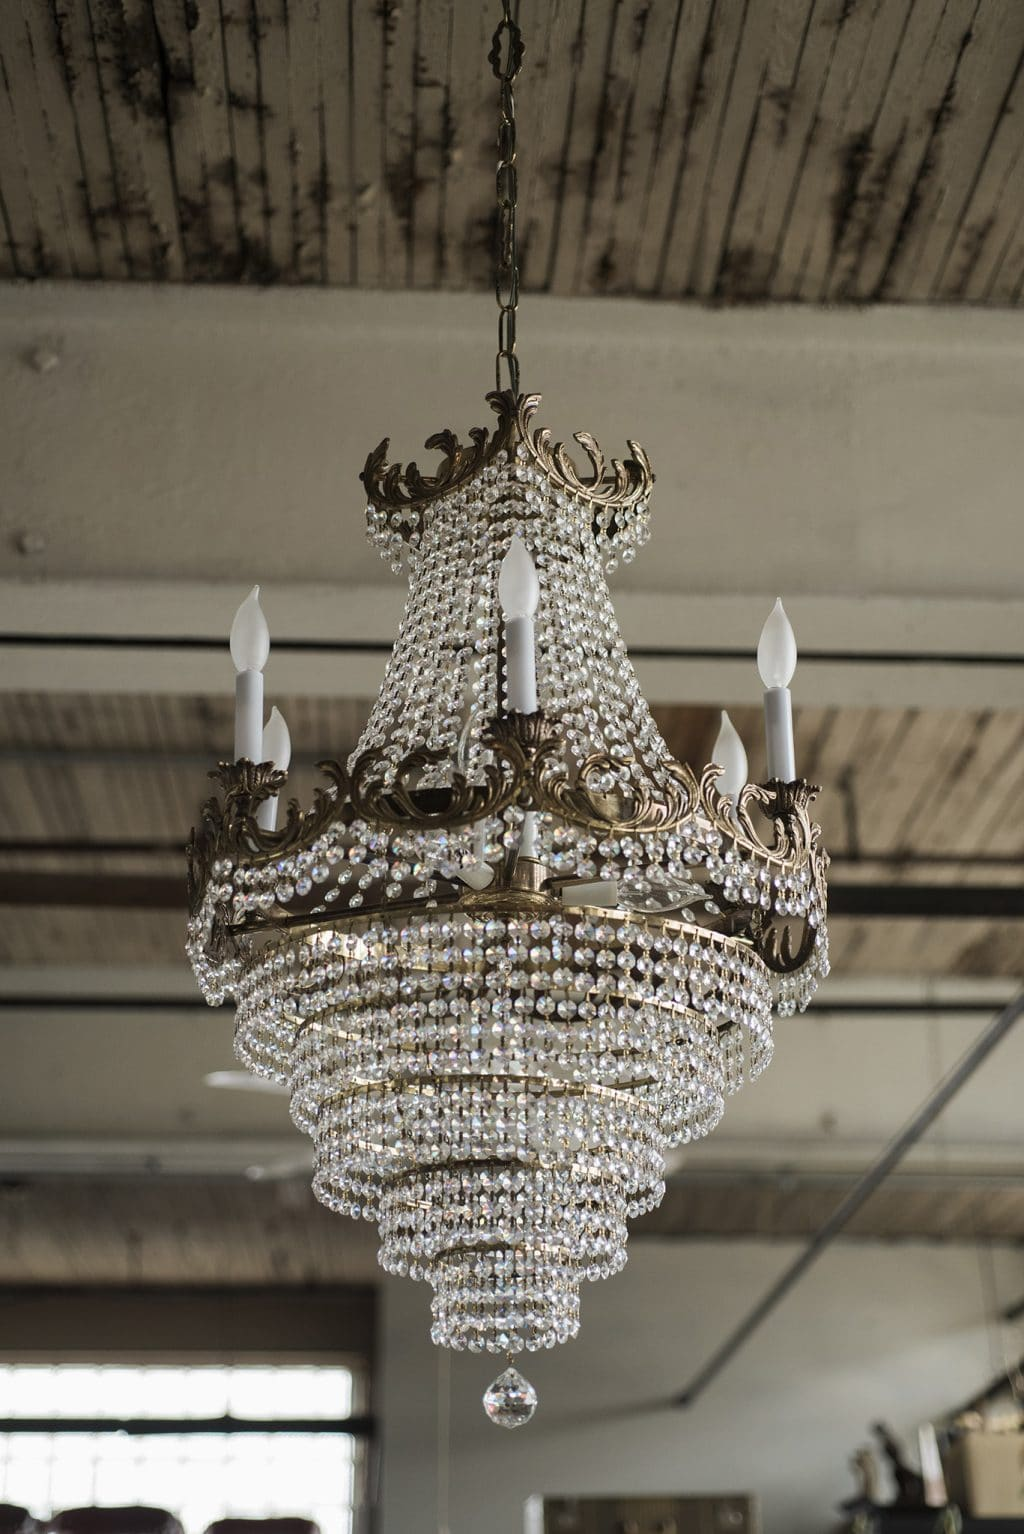 Say Chandelier In French Designs